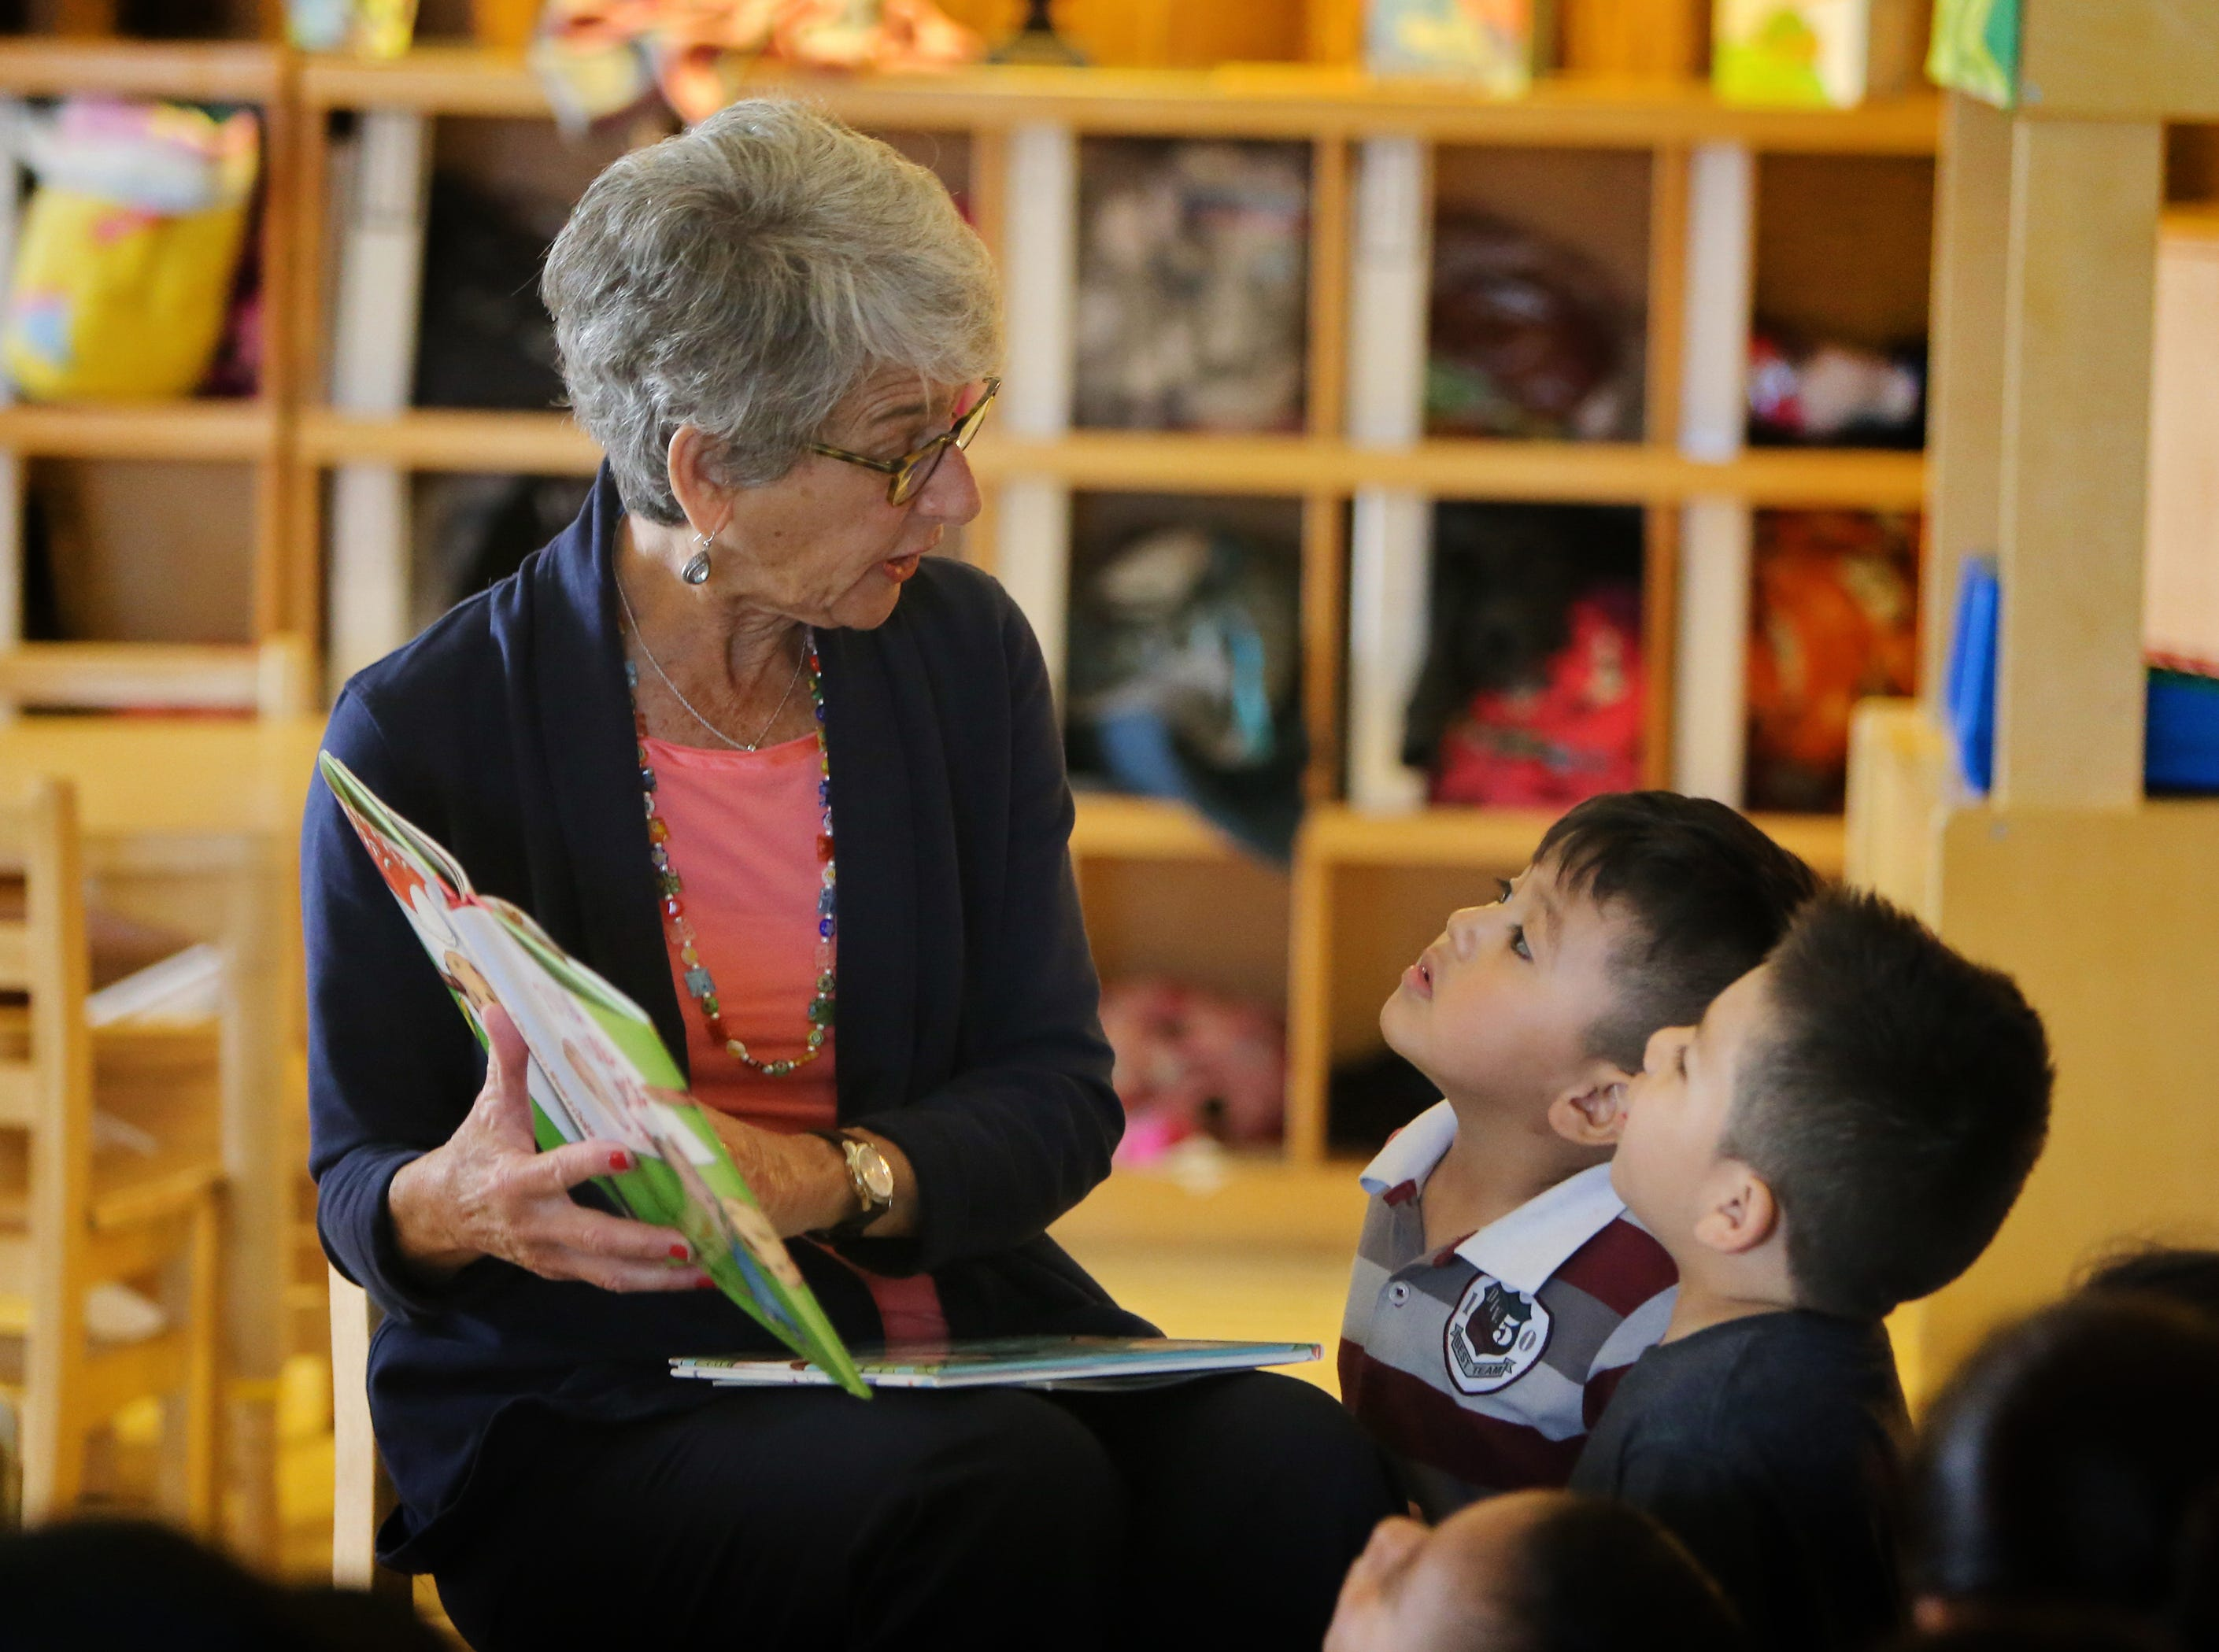 Adrian Rosales, right, 4, and Atzel Montiel, 3, listen to Sen. Hannah-Beth Jackson read a book to their preschool class at La Escuelita Child Development Center in Oxnard on Friday. More than 50 local celebrities participated in Take 5 and Read to Kids, an early literacy campaign organized by First 5 Ventura County and co-sponsored by The Star.